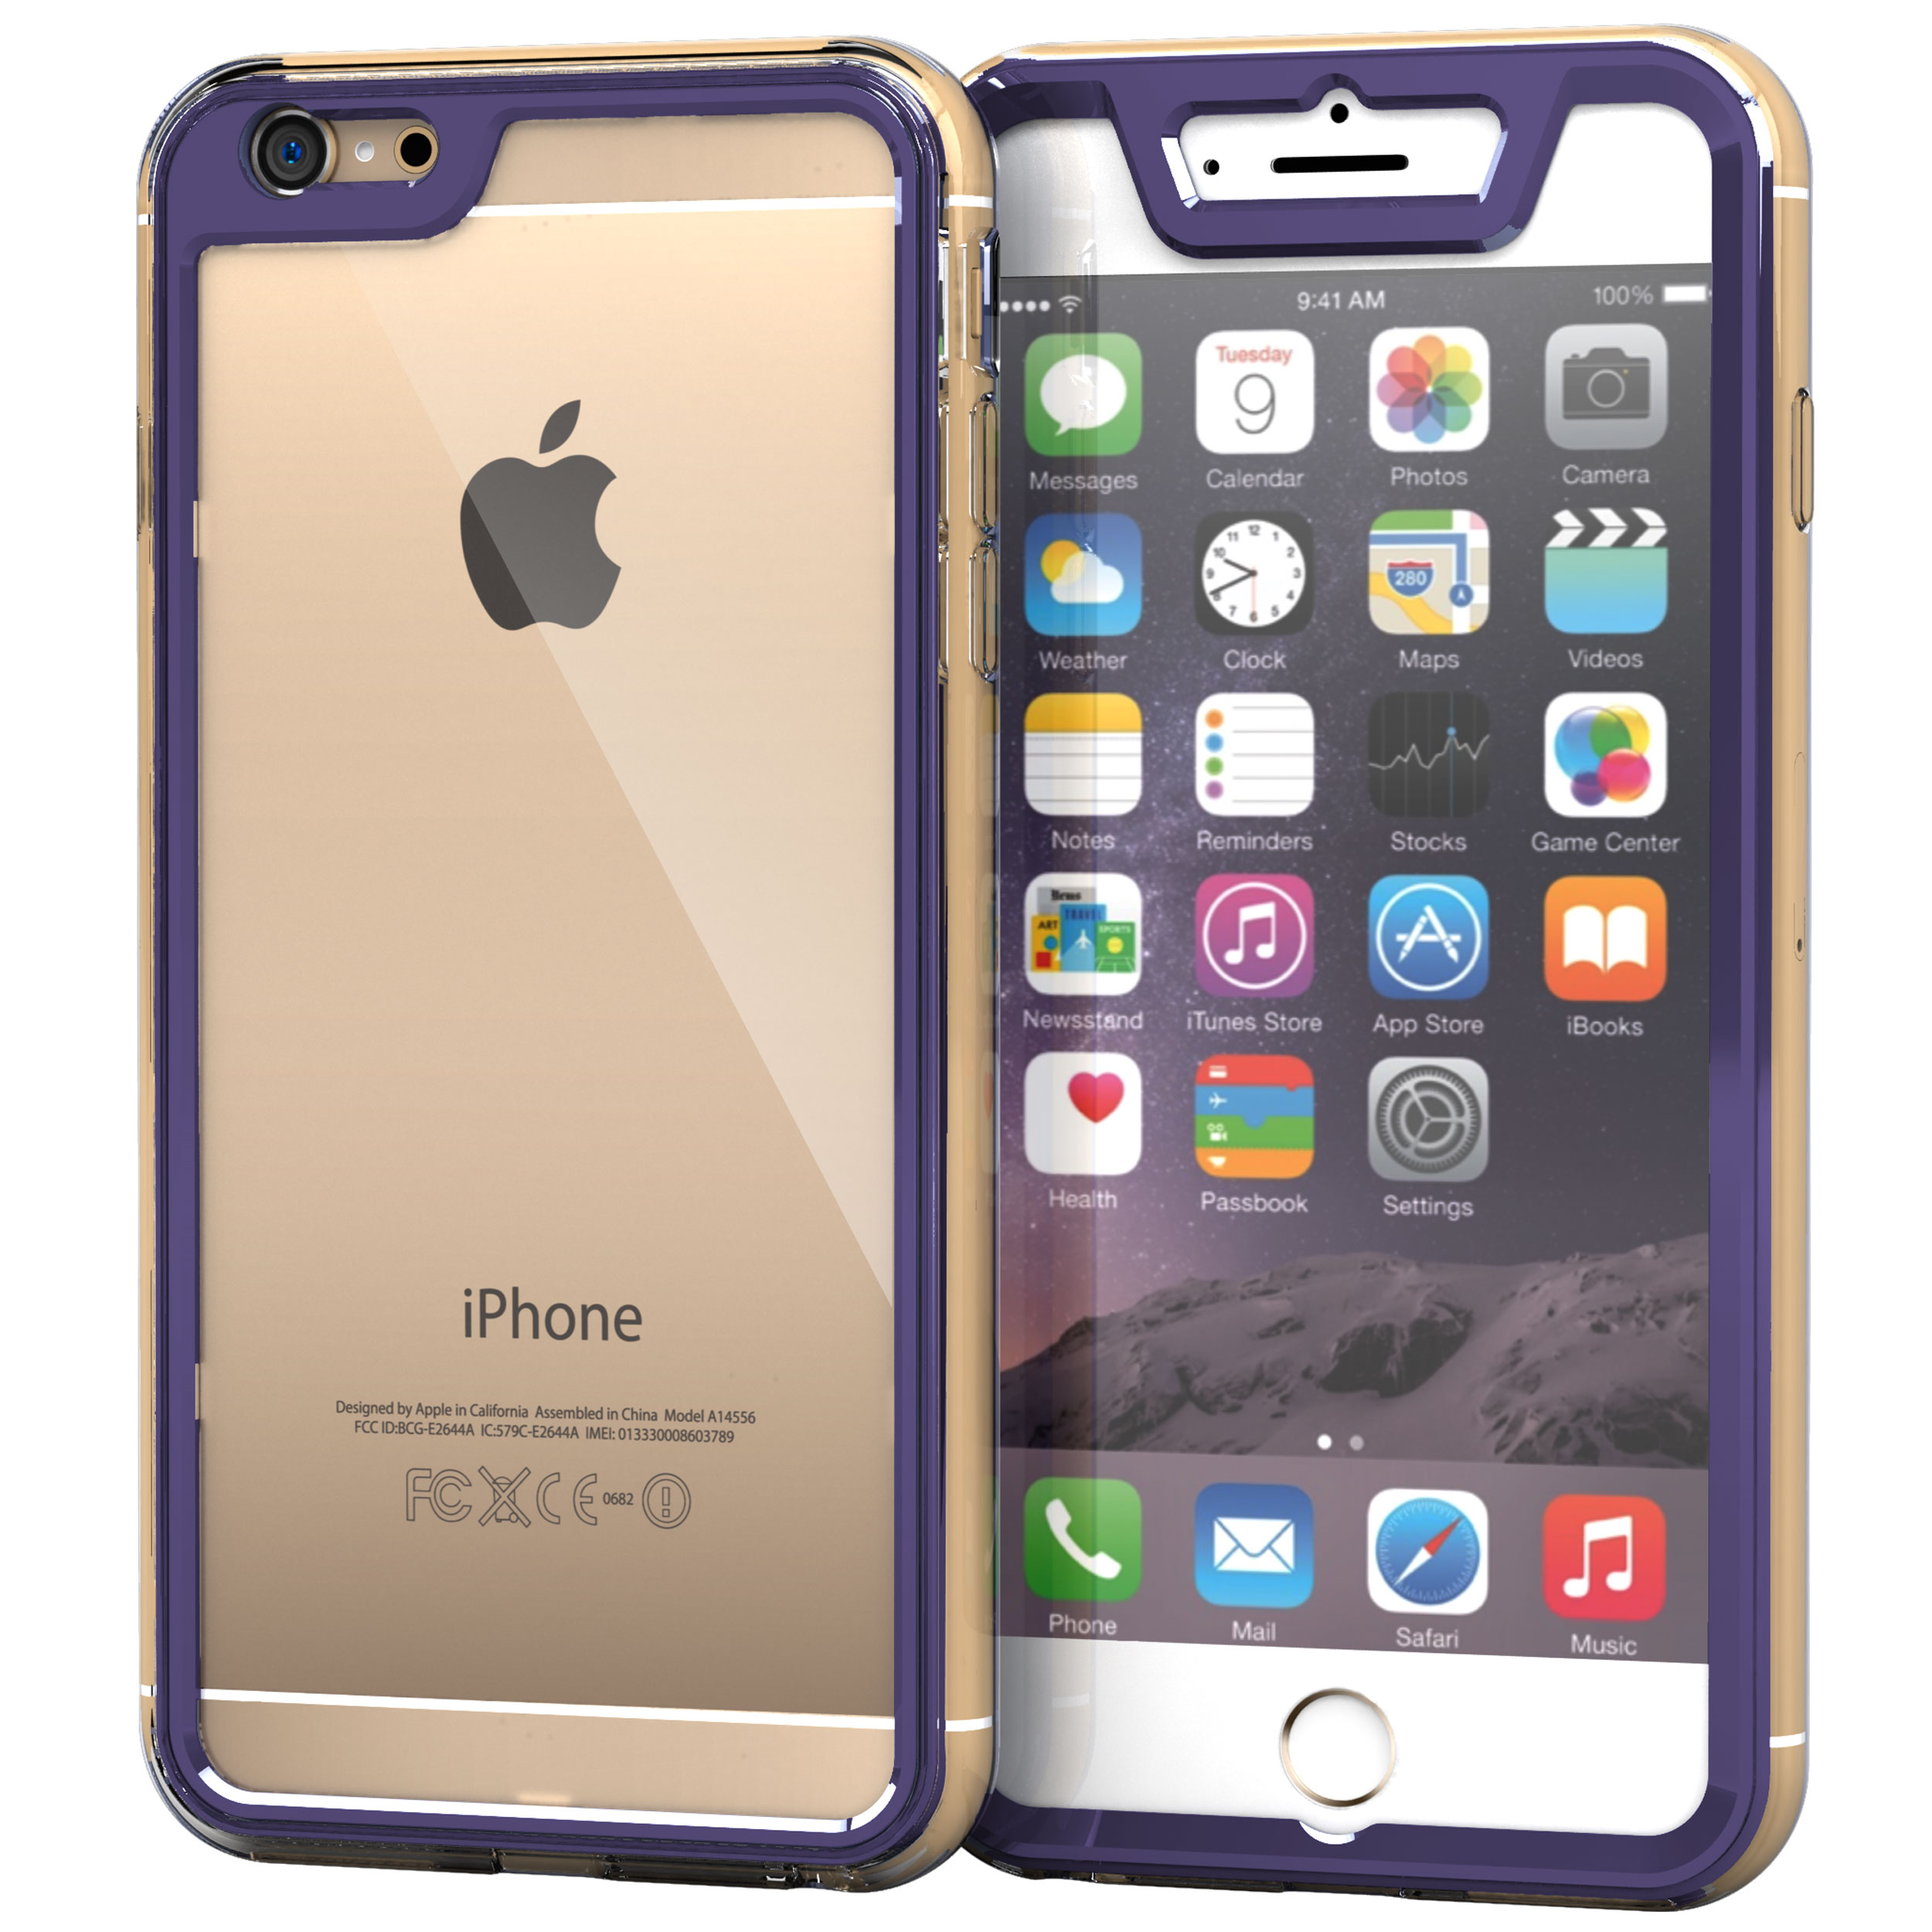 iPhone 6s Plus Case, Gelledge Premium Hybrid PC / TPU Protective Full Body Case Cover for Apple iPhone 6 Plus / 6s Plus (2015)